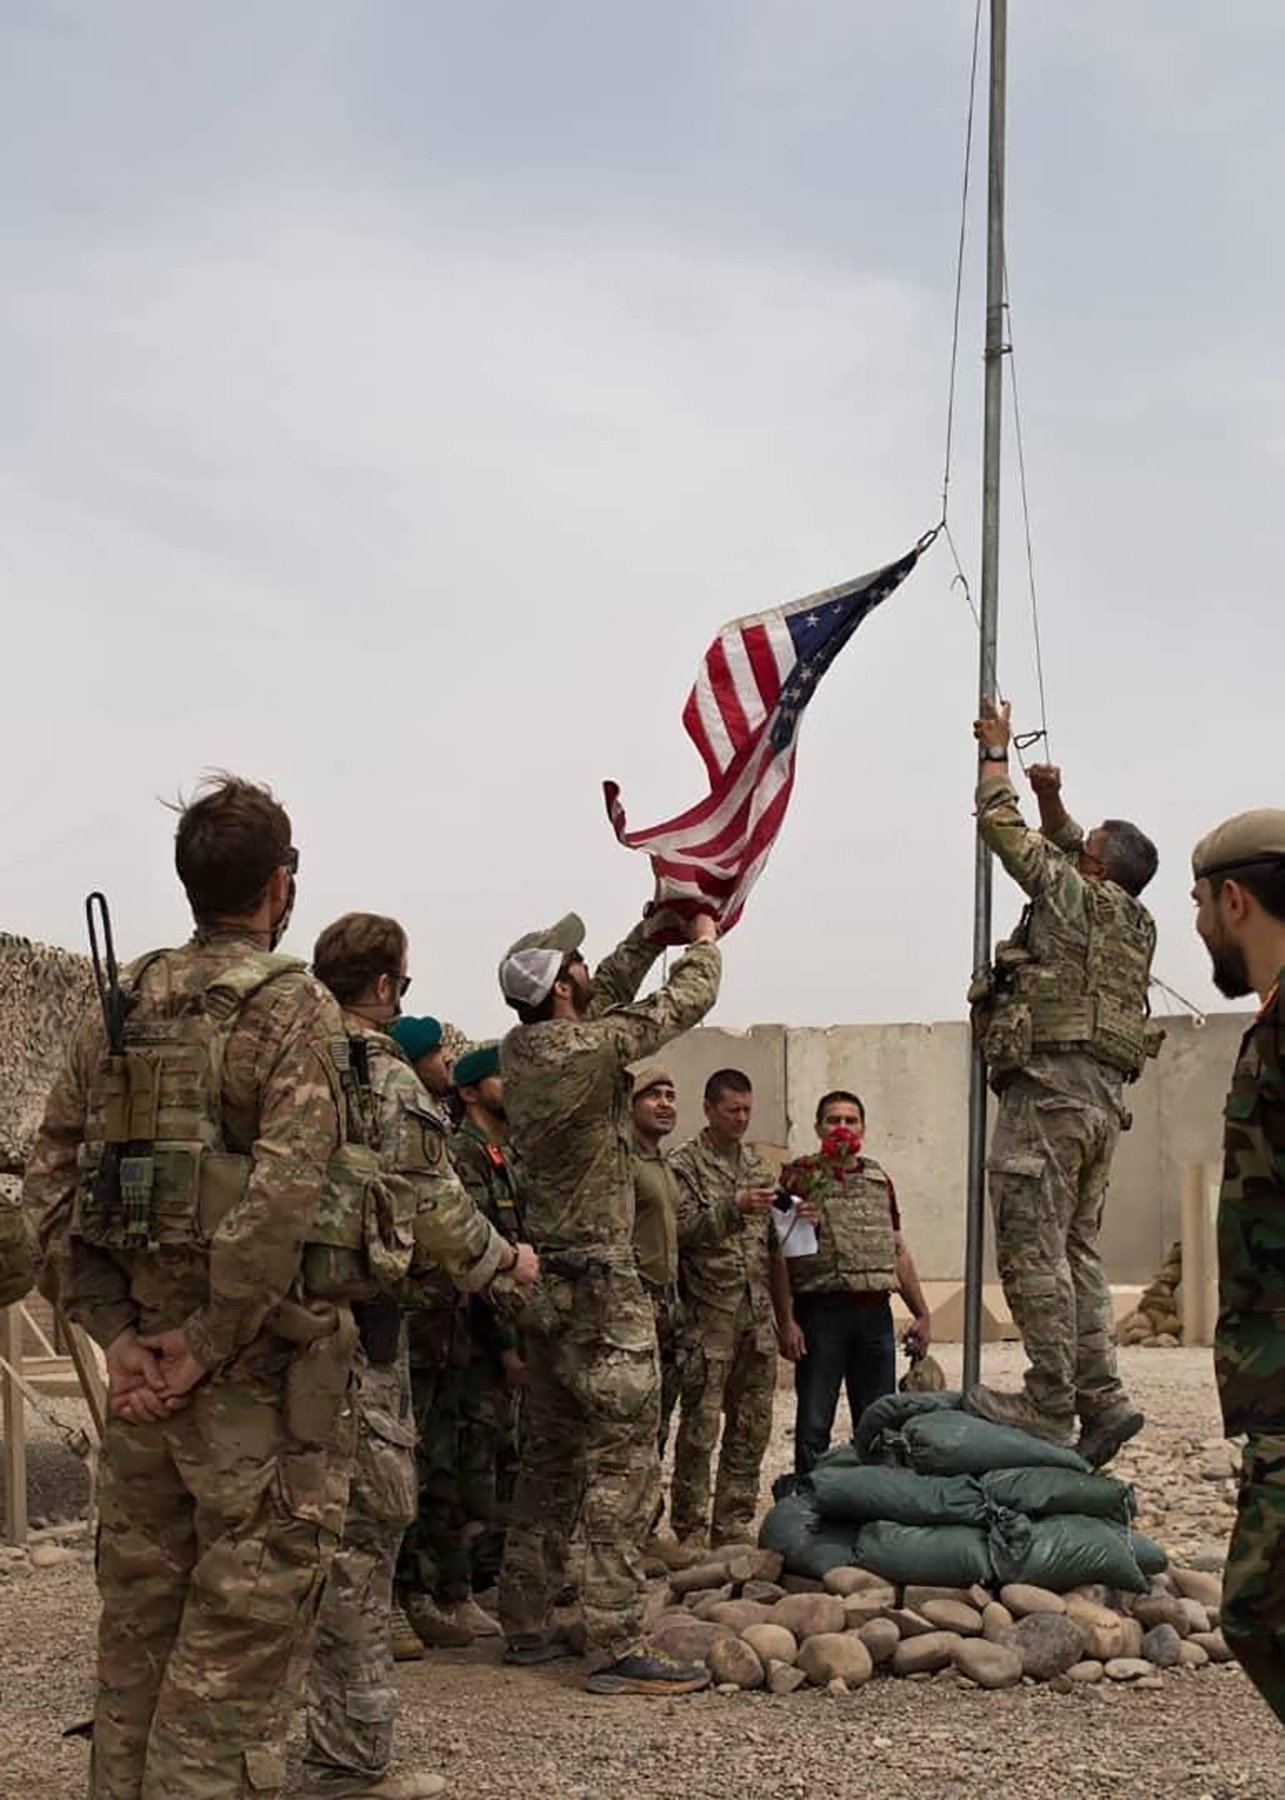 A U.S. flag is lowered as American and Afghan soldiers attend a handover ceremony from the U.S. Army to the Afghan National Army, at Camp Anthonic, in Helmand province, southern Afghanistan, May 2, 2021. (AP Photo)